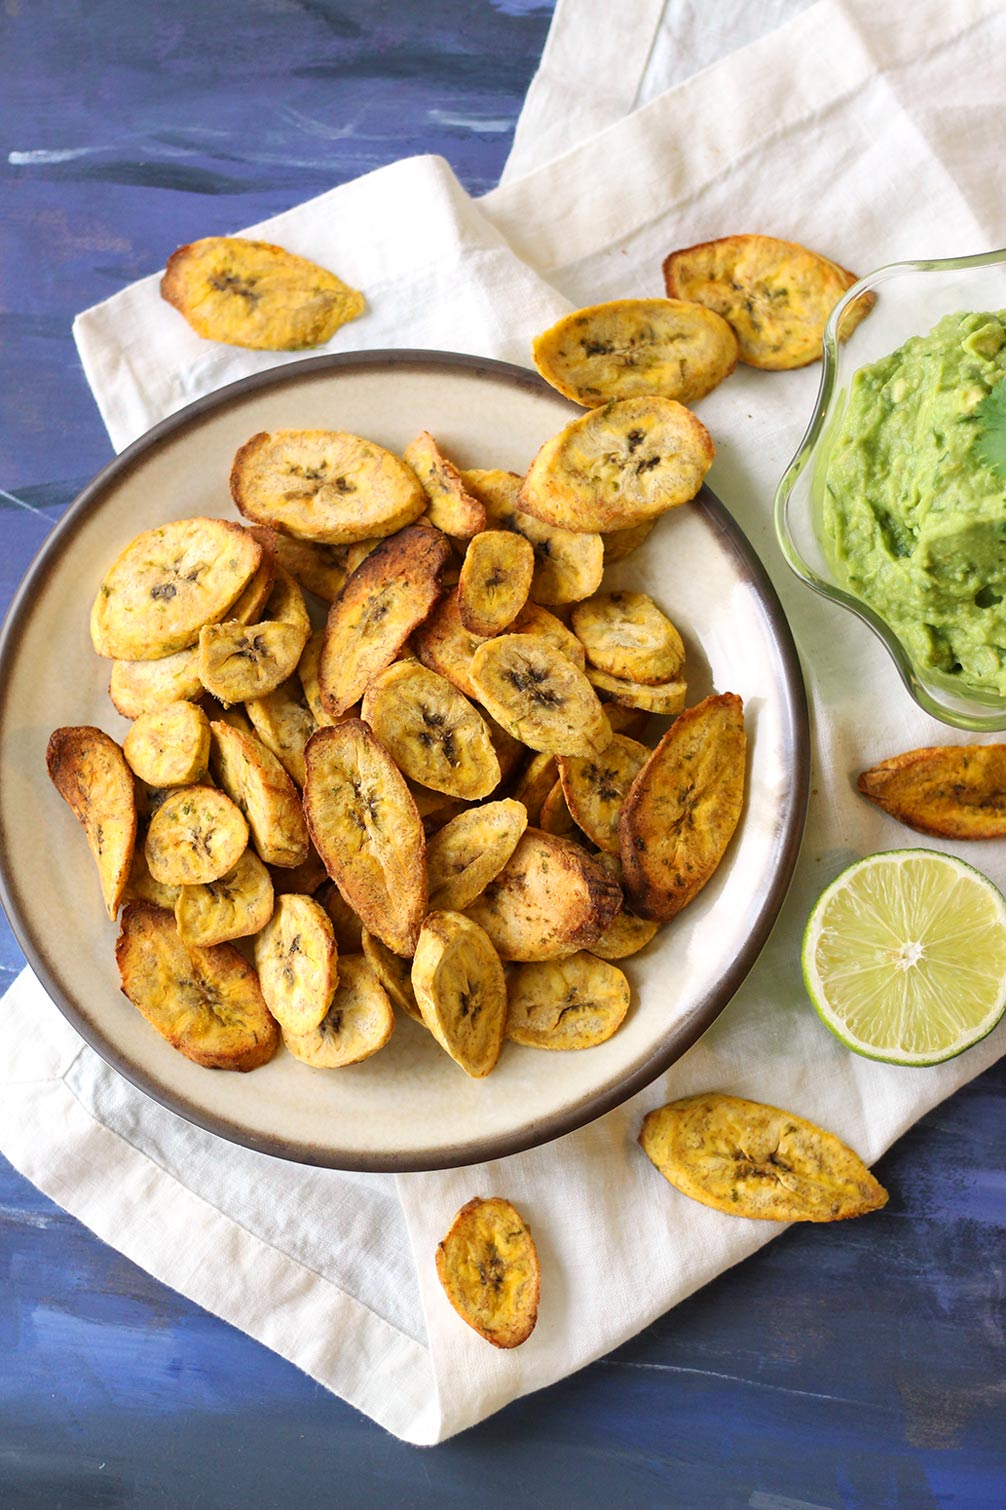 These air fryer plantain chips are a healthy vegan snack, served with creamy guacamole. The plantain chips are flavored with chili and lime, and can be baked in the oven as well. Gluten-free recipe.